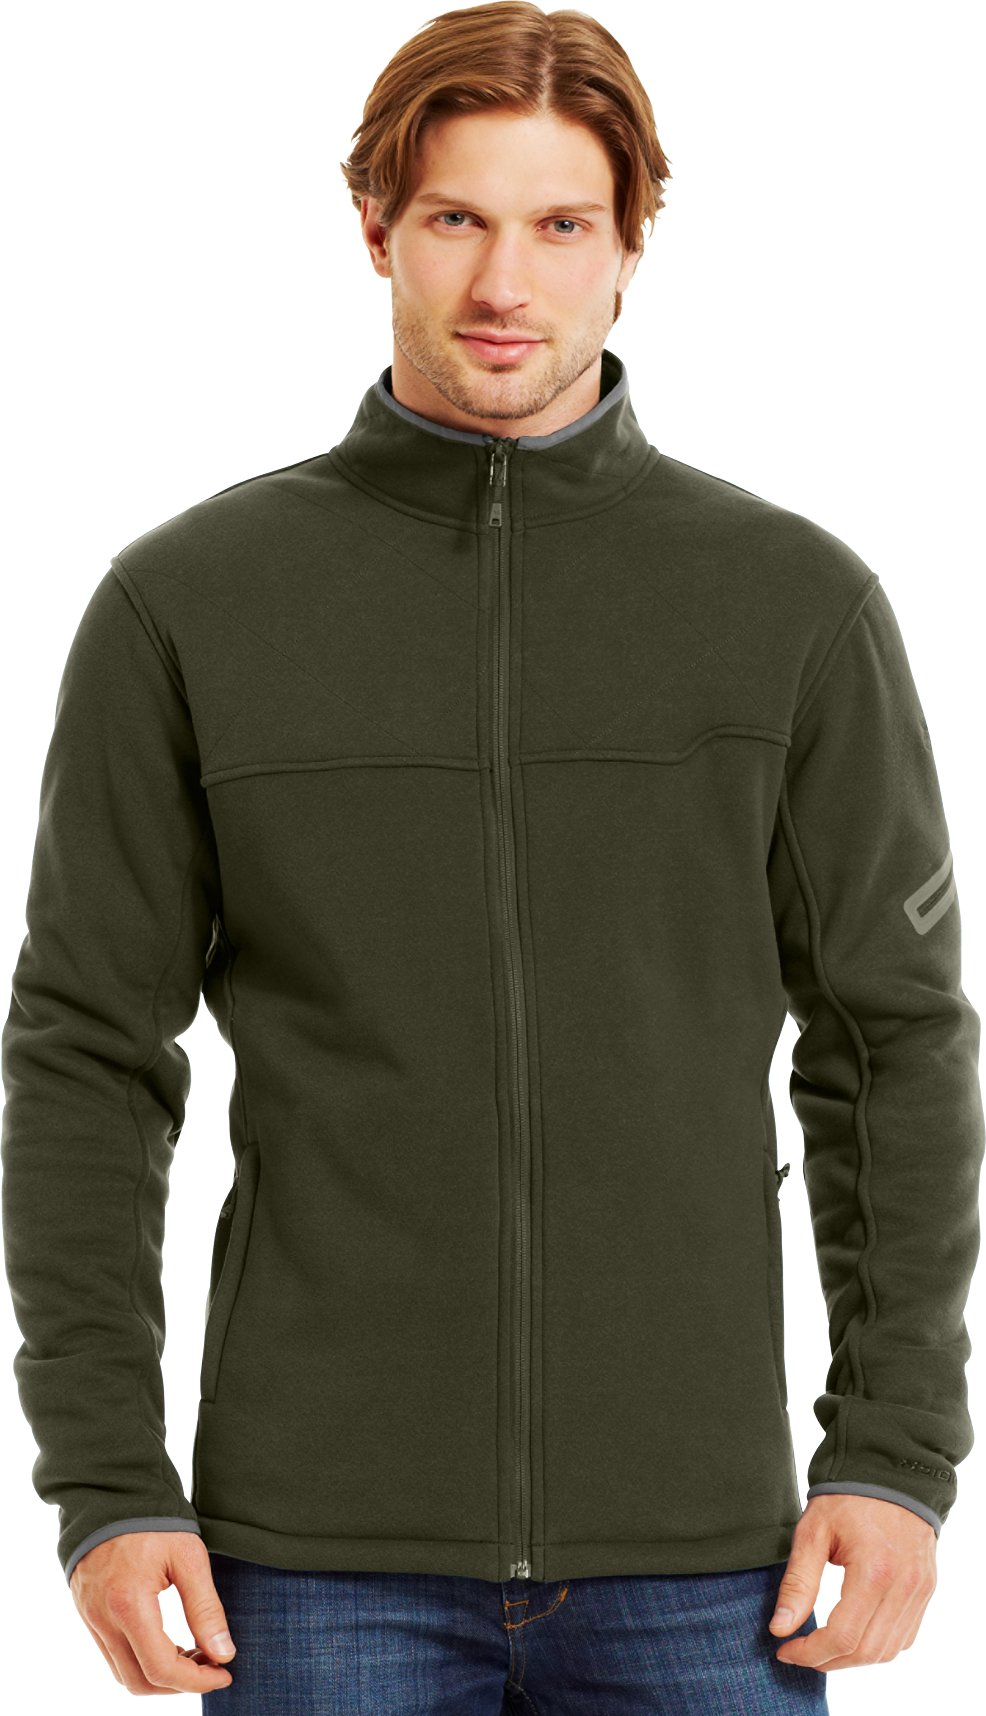 Men's Extreme ColdGear® Jacket, GREENHEAD, zoomed image